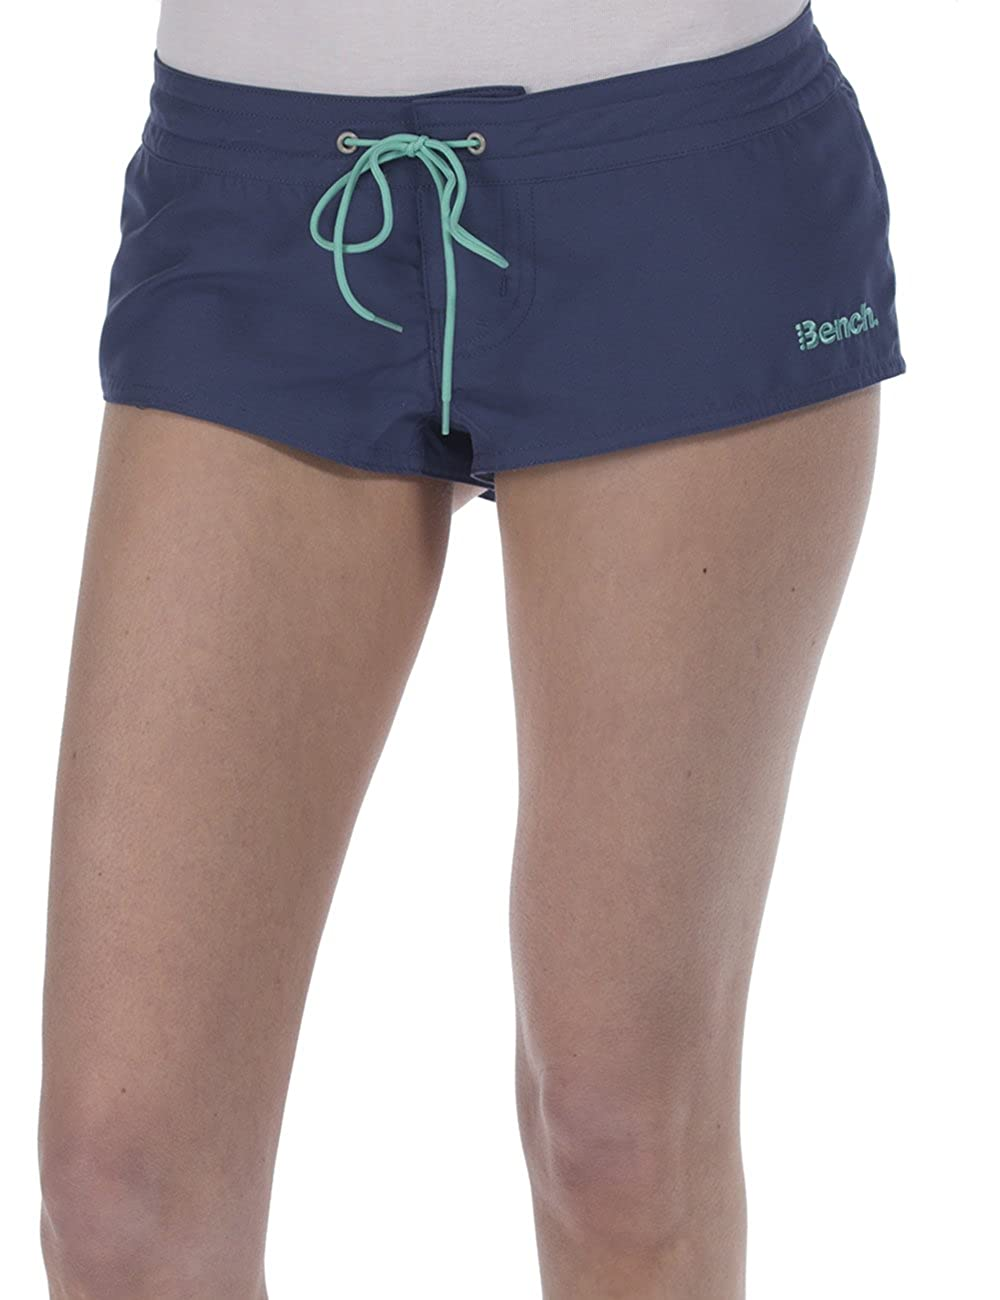 Bench Damen Badeshorts Hottee D Bench Limited (Apparel) BLBF0033D